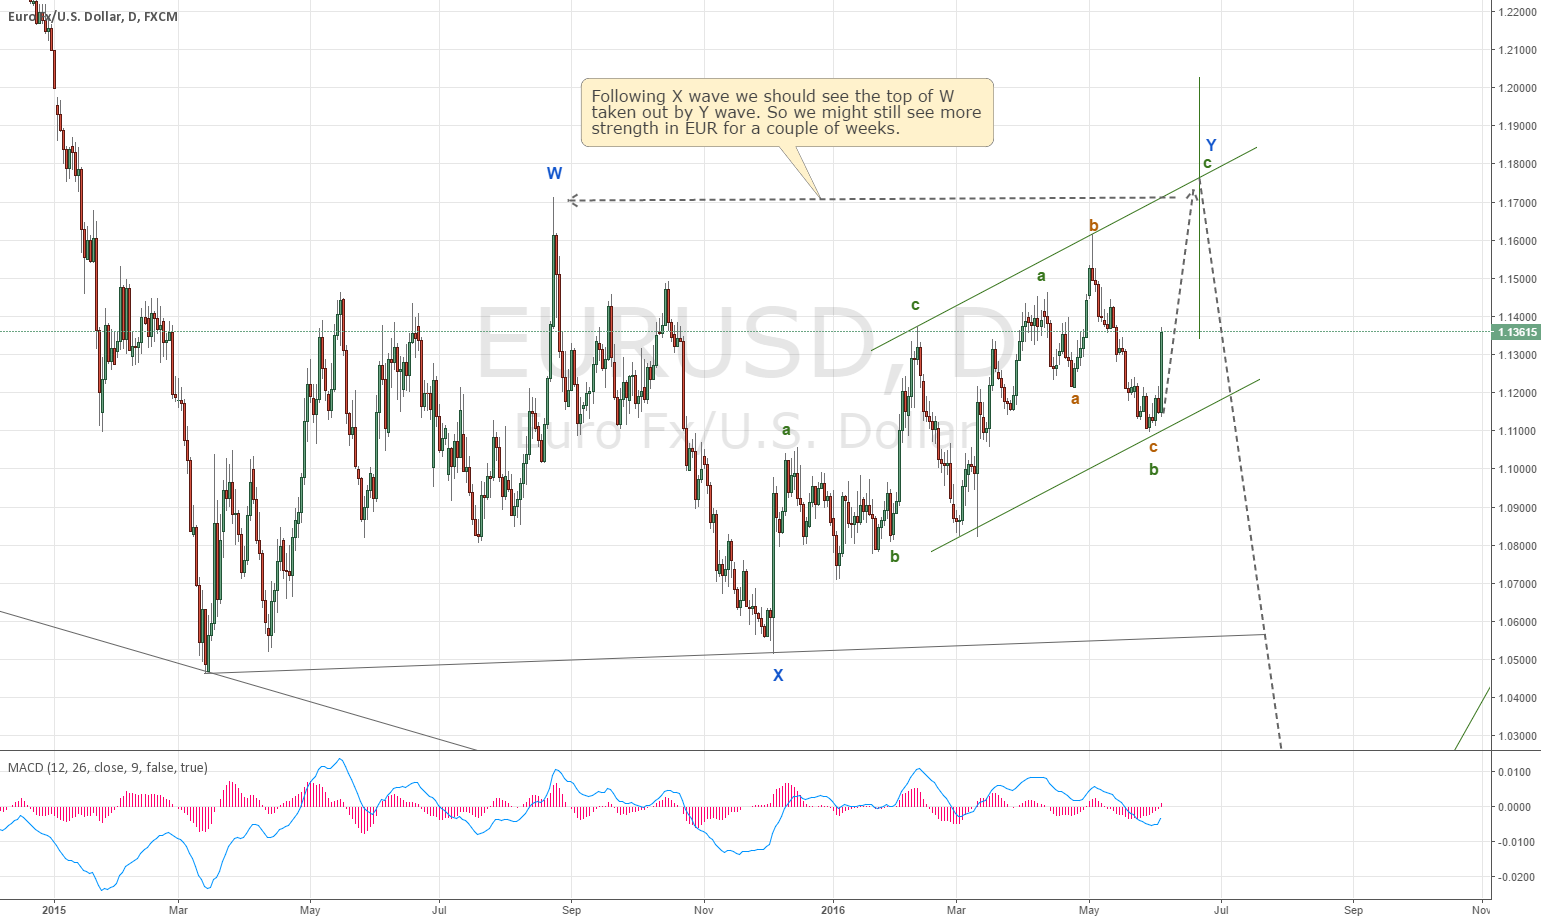 EUR may show more strength in the coming 2 weeks